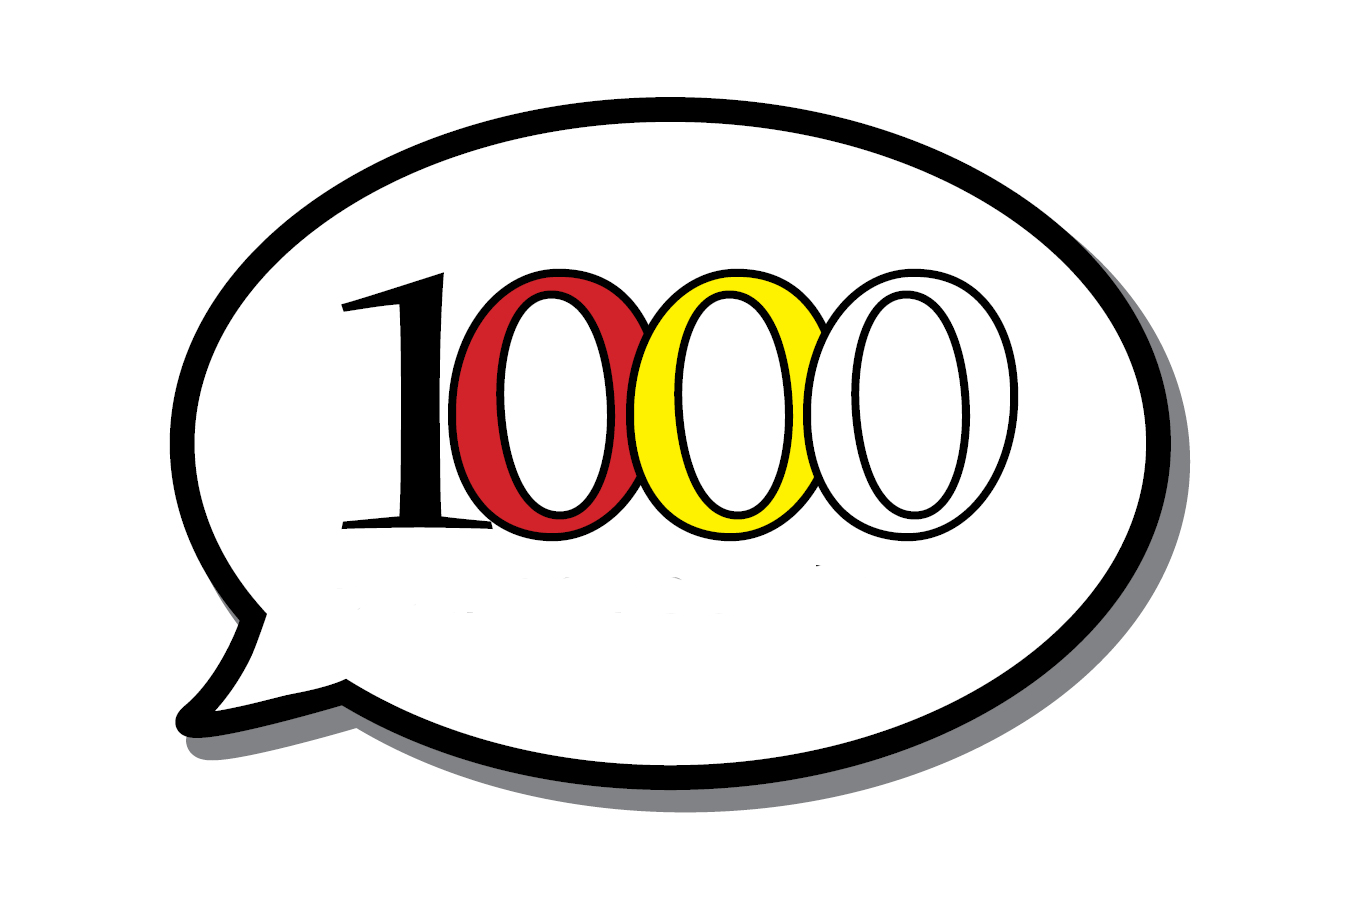 1000 bill clipart image transparent stock Free Number Cliparts 1 000, Download Free Clip Art, Free Clip Art on ... image transparent stock